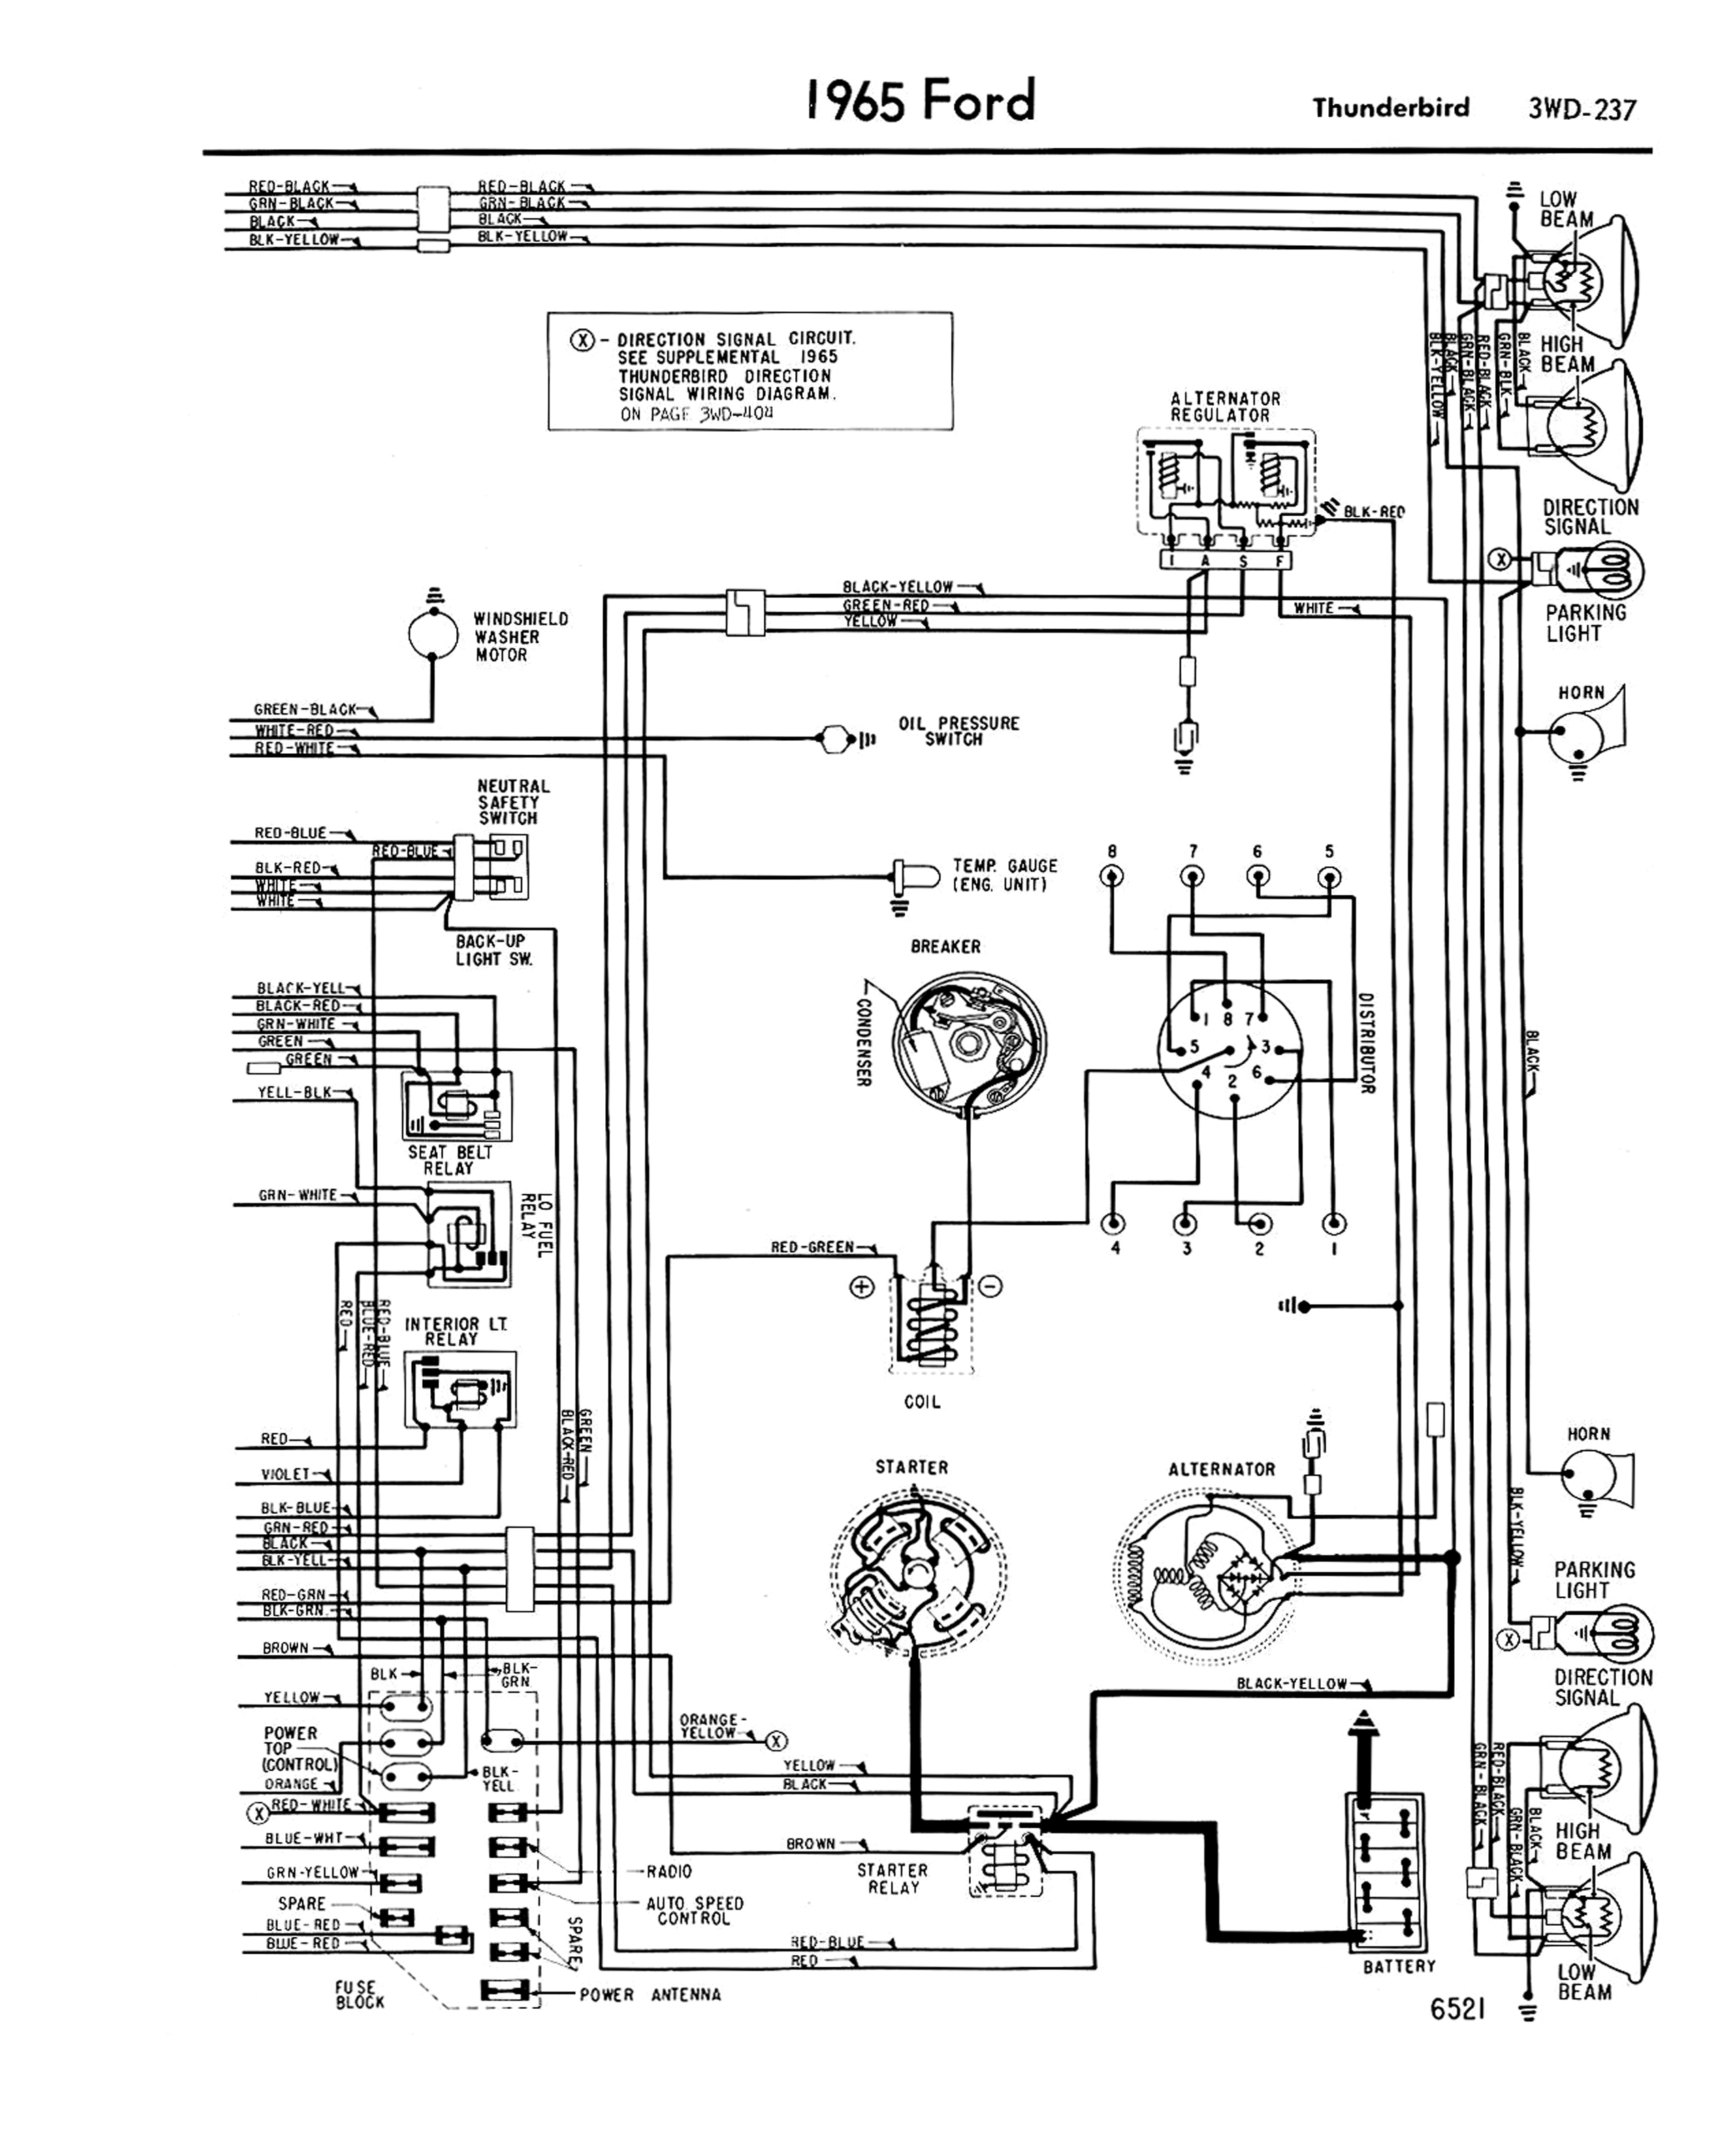 1956 thunderbird wiring diagram pdf